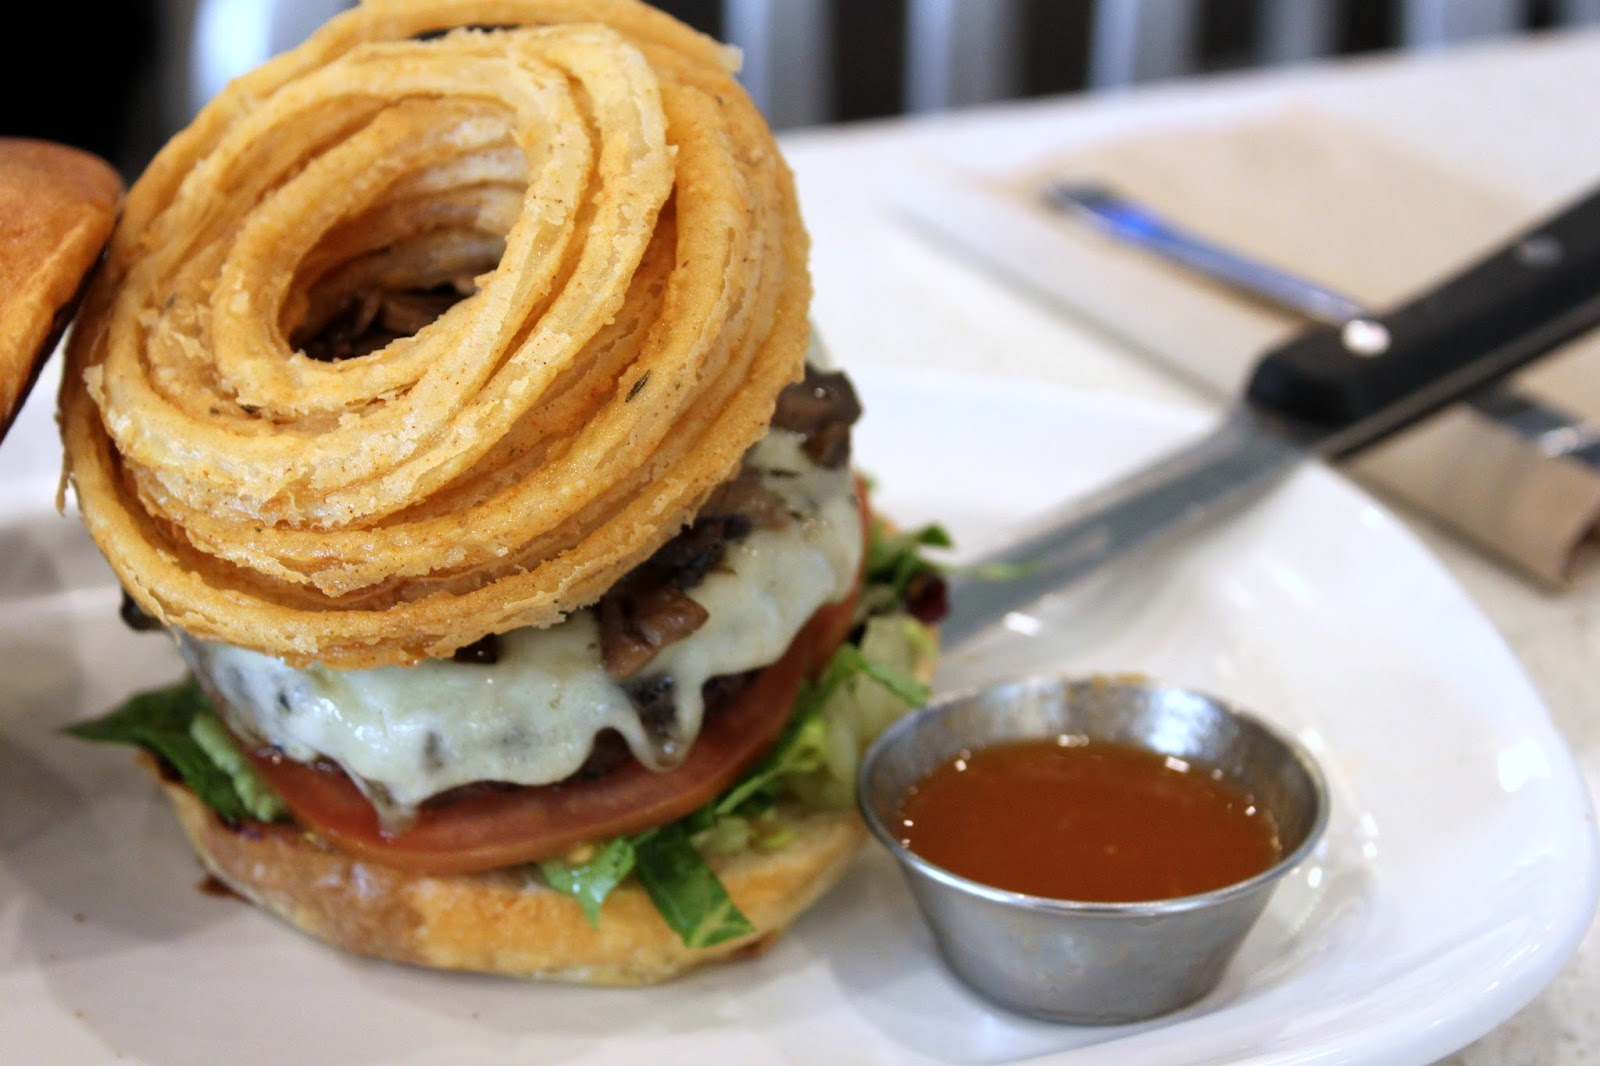 Burger - Plated Dish - Point of Interest